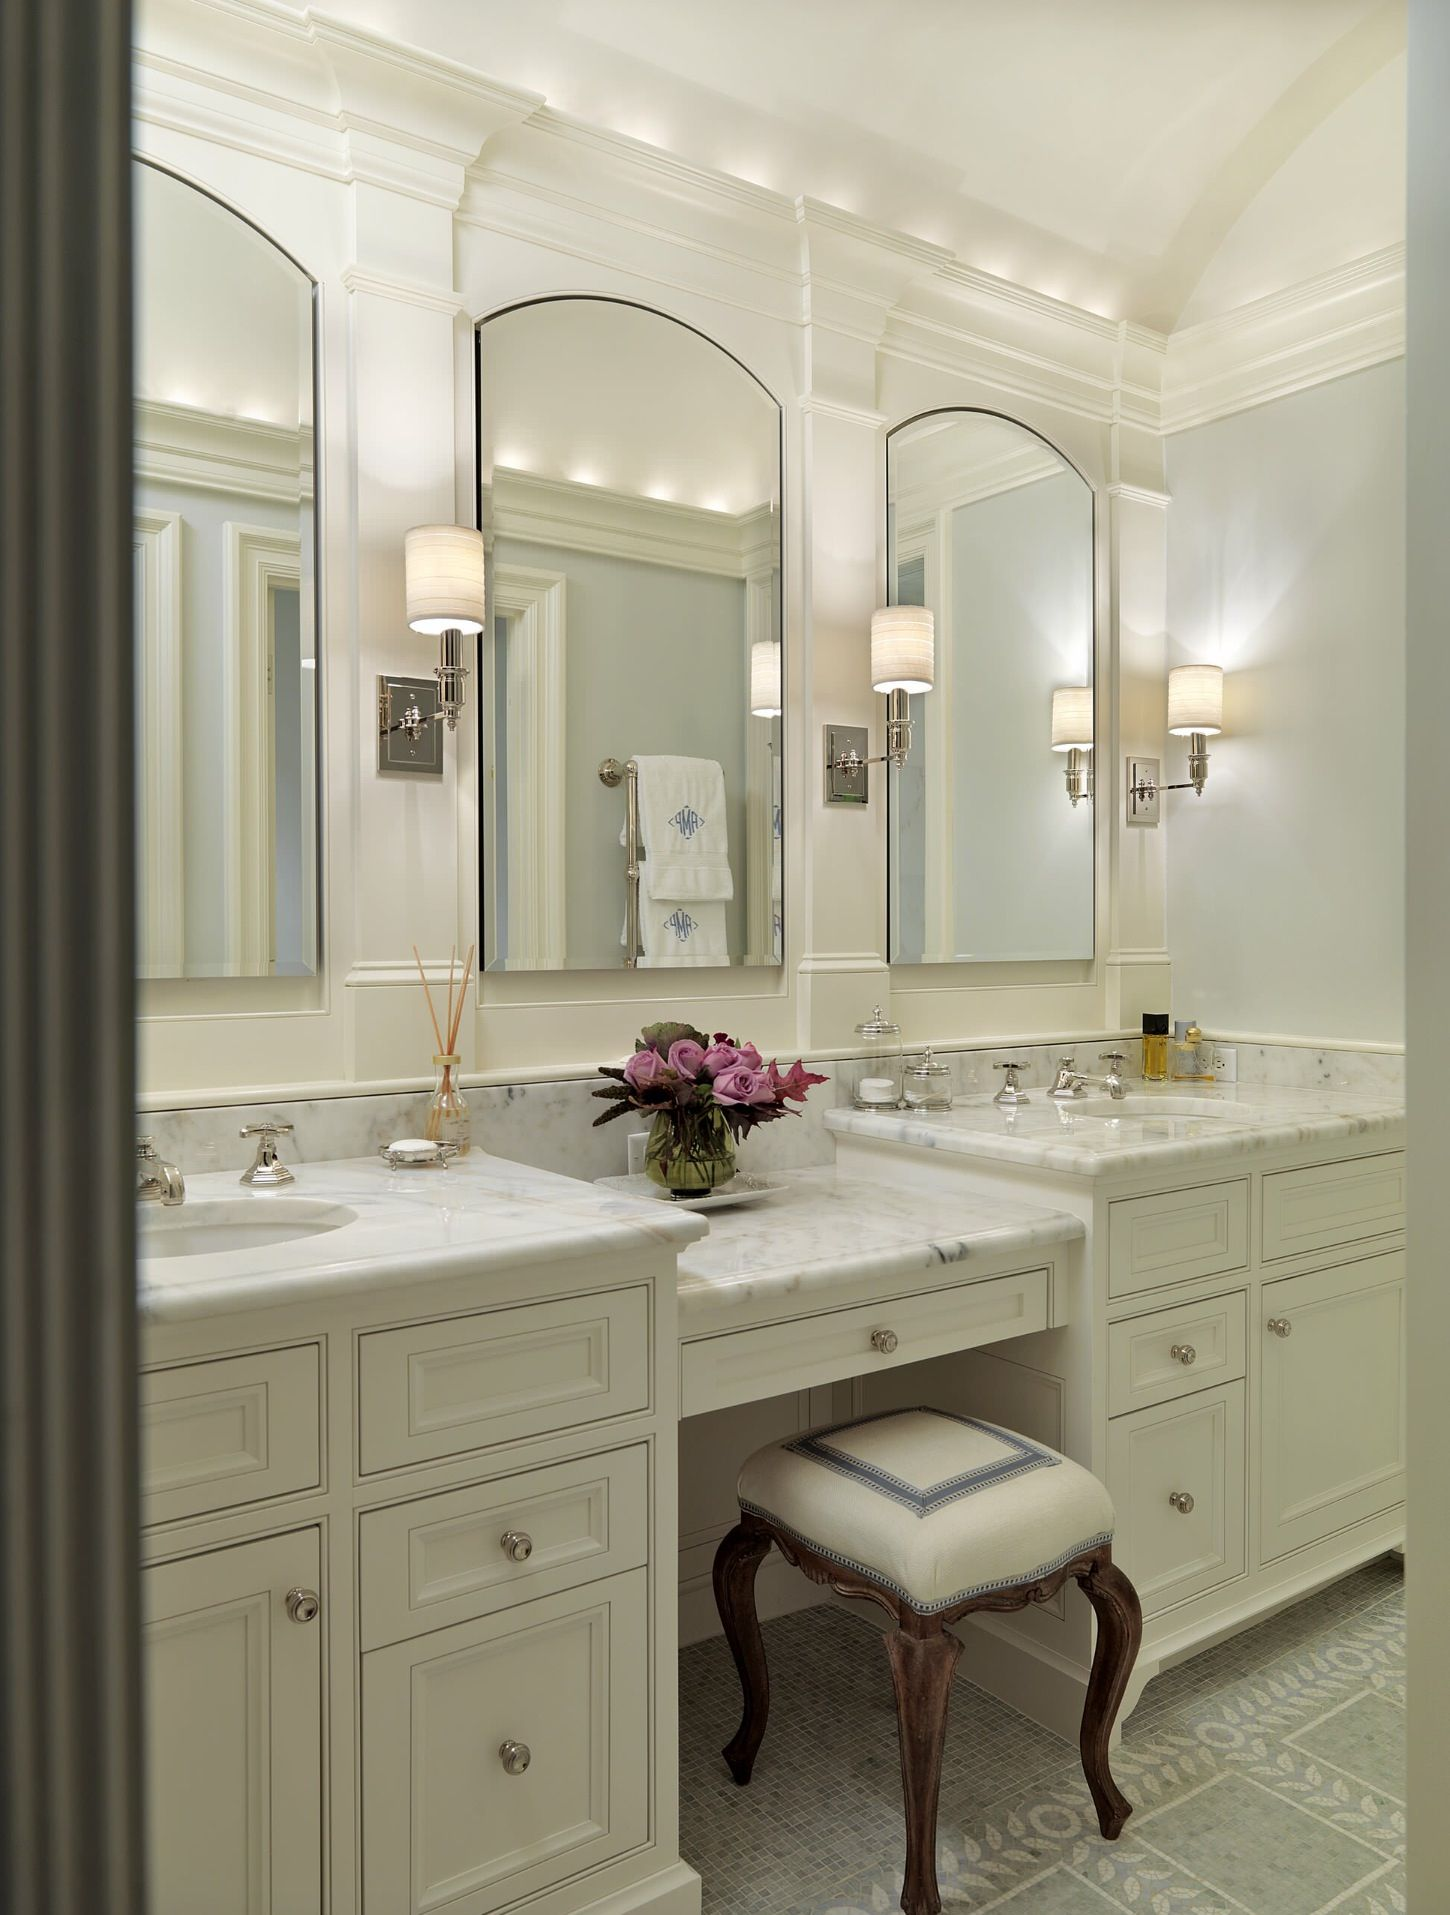 Double Sink With A Vanity Bathroom Remodel Master Master